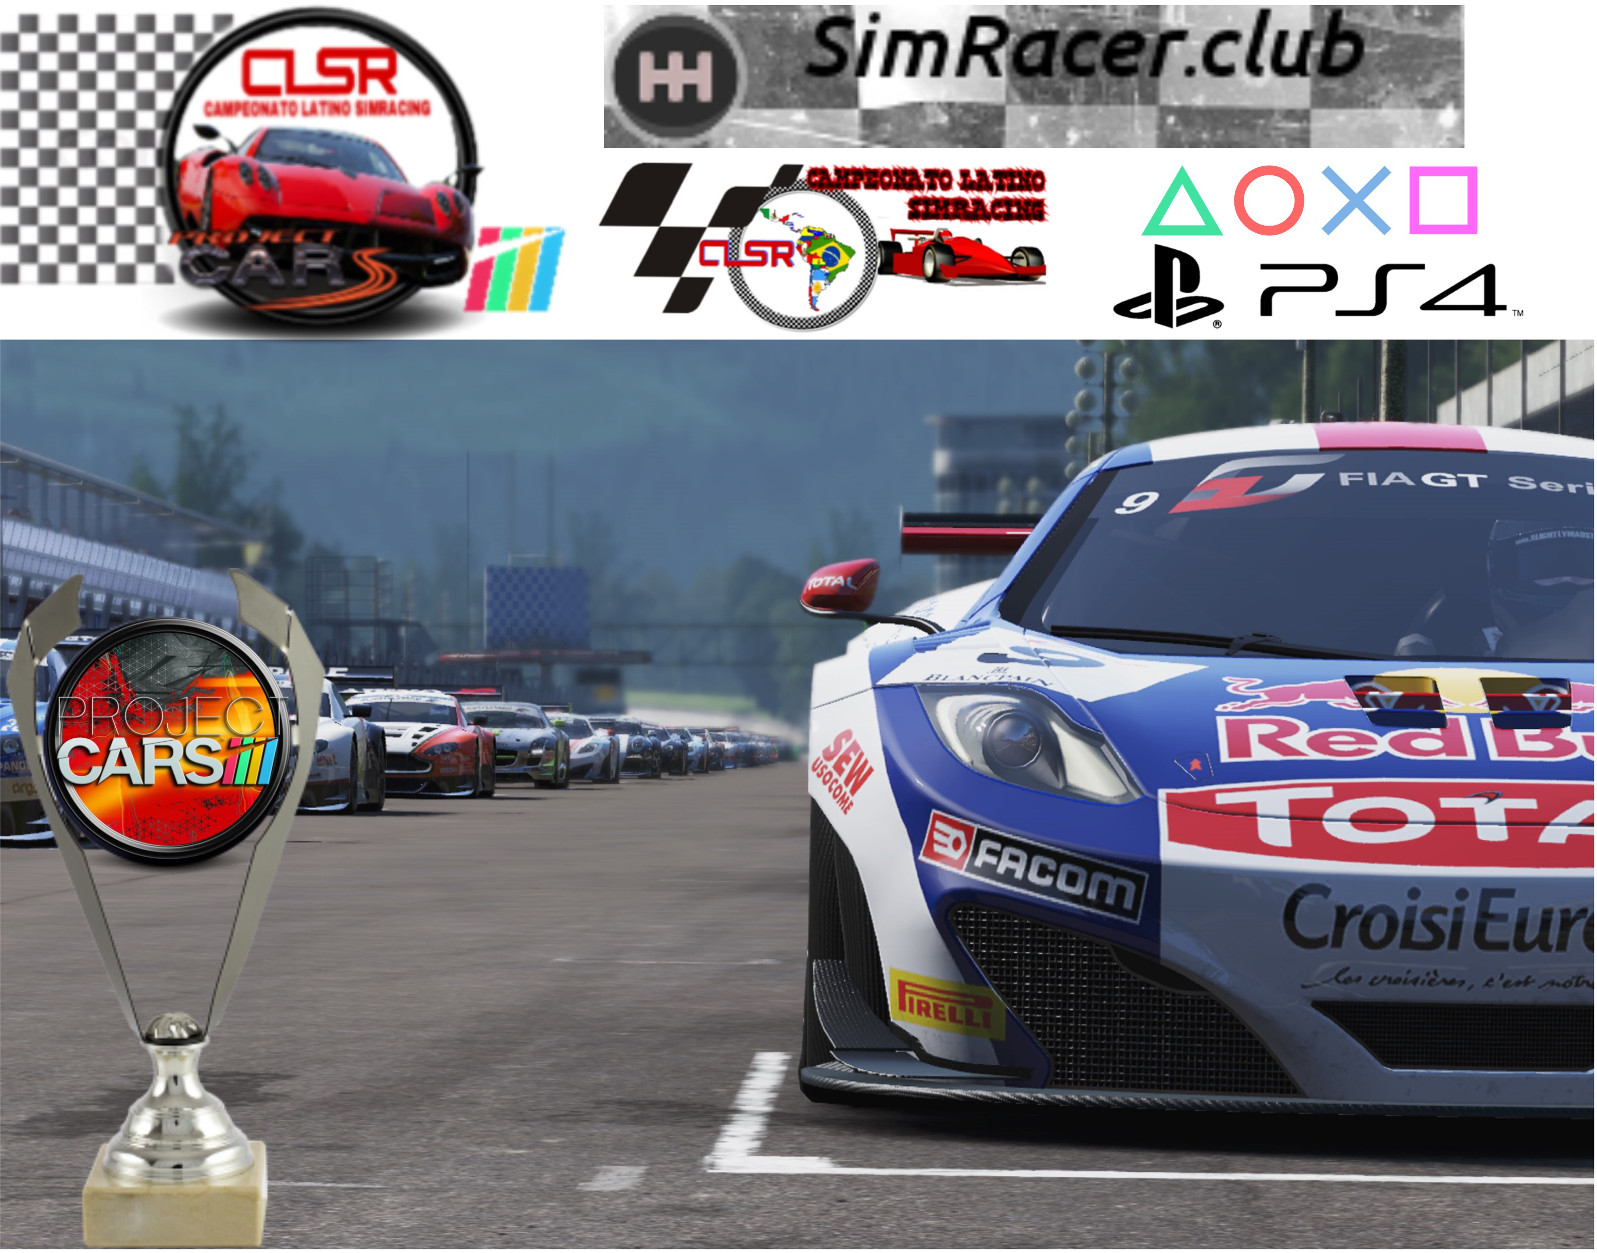 liga clsr project cars 0a2ef